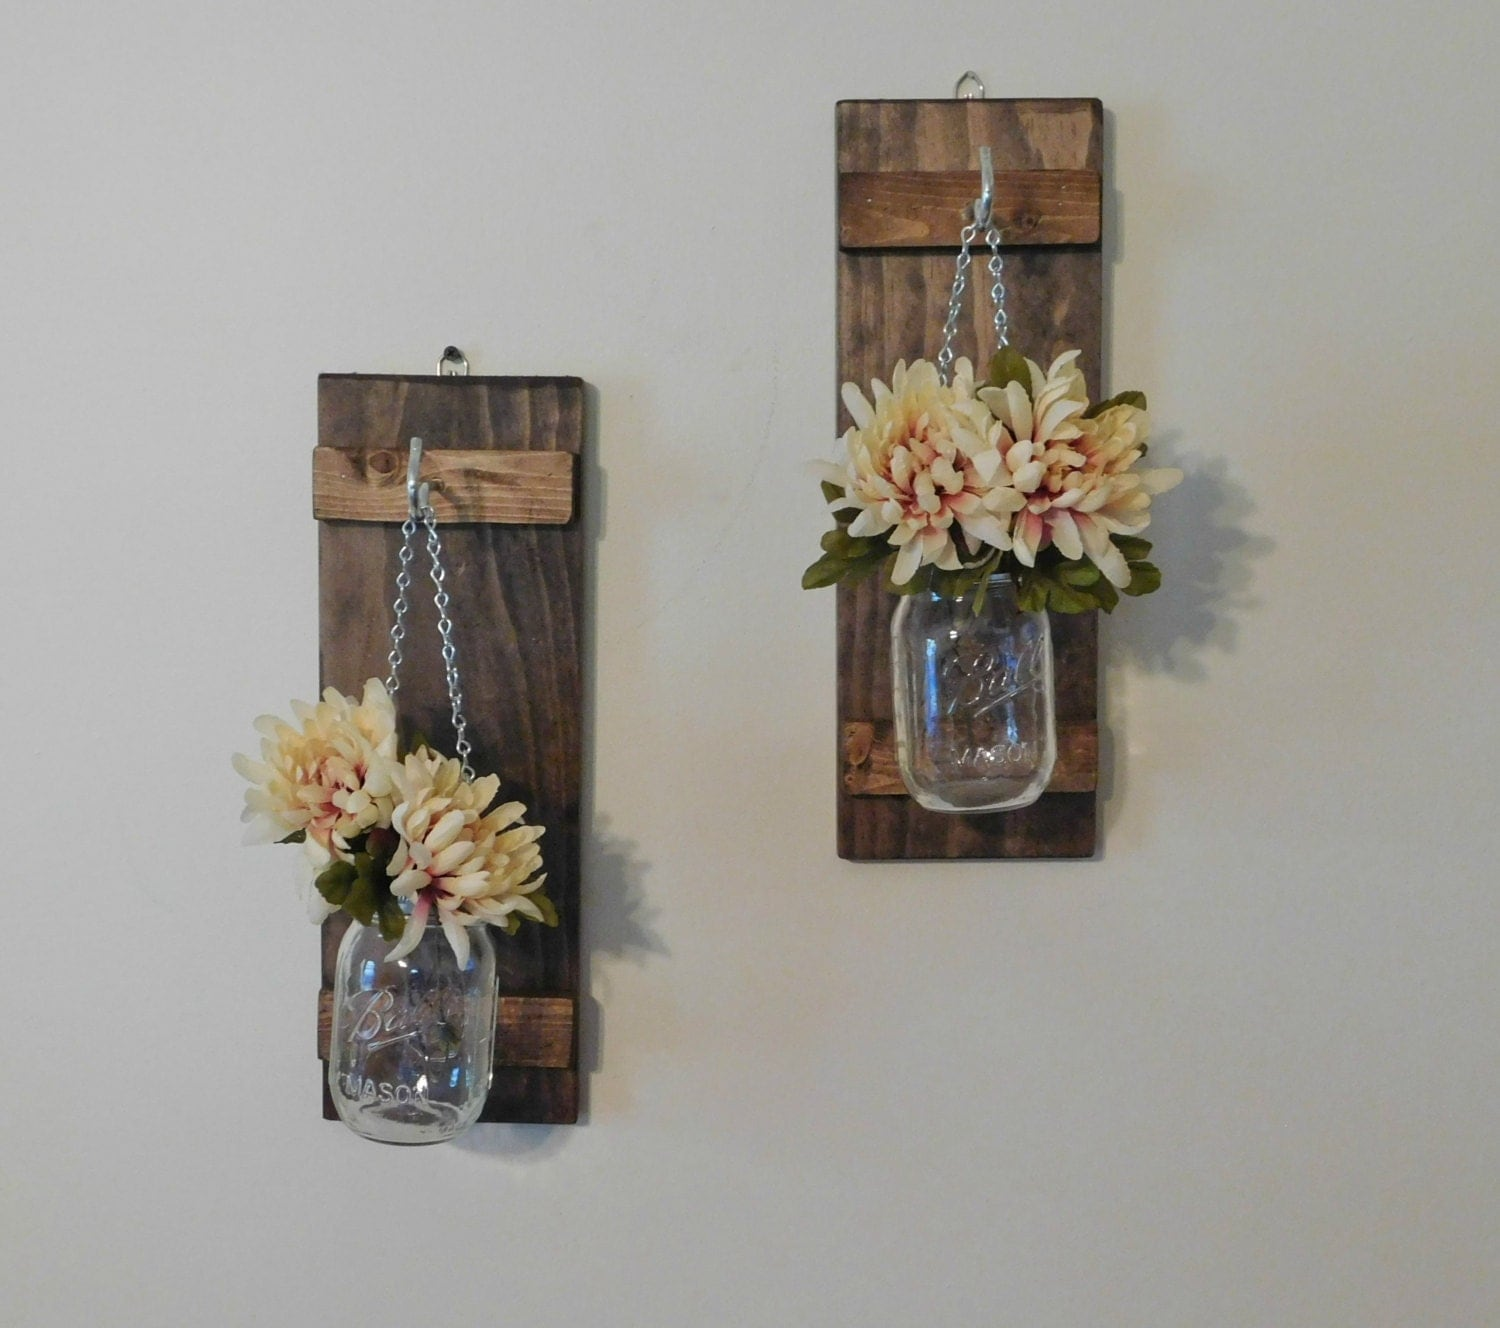 Wall Sconces That Hold Flowers: Hanging Mason Jar Wall Sconce Flower Vase Candle Sconce Wall